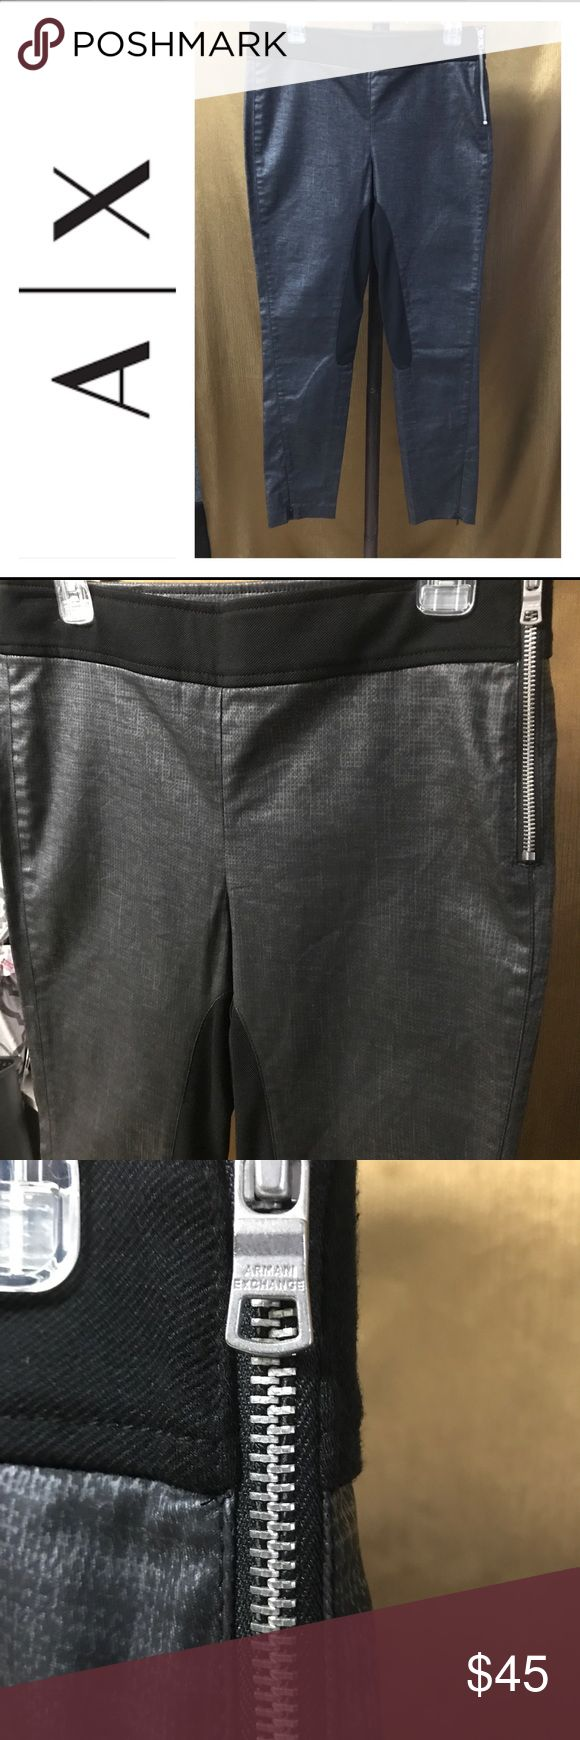 🎉❤️ New Armani Exchange Leggings ❤️🎉 ❤️Selling a sexy leather rocker AX Legging ❤️ Its size 10.. a fitted size 10 ❤️ Color Dark Grey ❤️This legging looks so Nice ❤️ Makes your behind look bigger 👀 ❤️ So this legging is worth every Cent ❤️ A/X Armani Exchange Pants Leggings